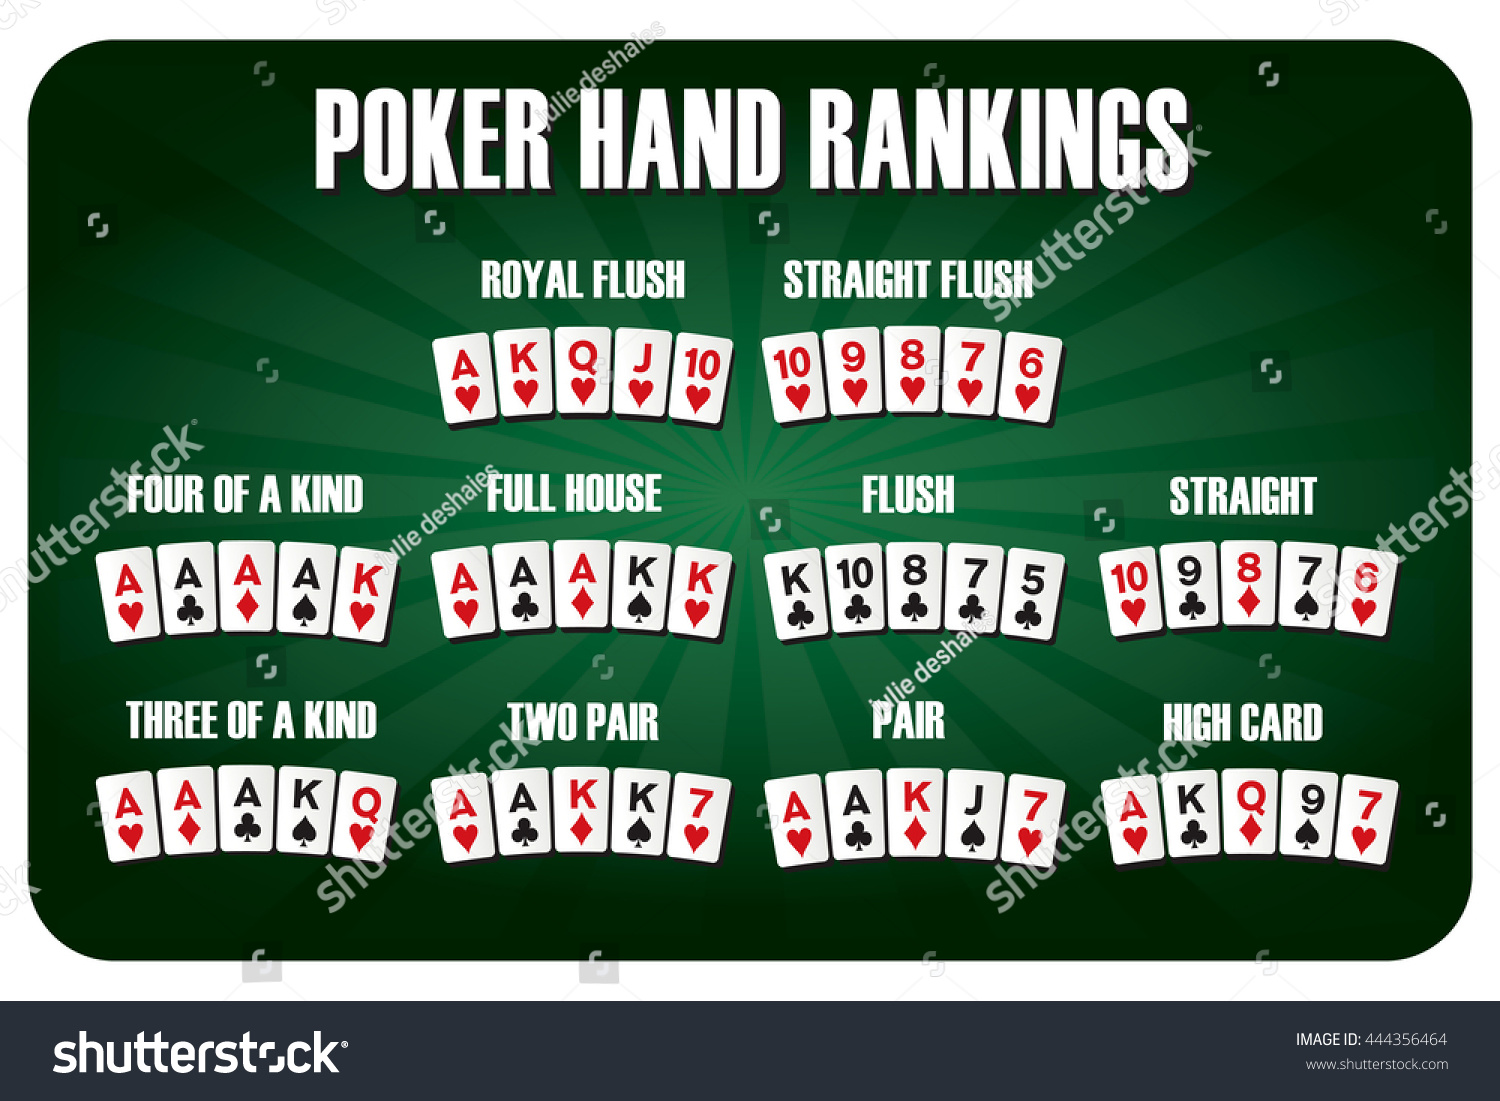 Collection #1 Passwords Download Texas Holdem Poker Hand Rankings Combination Stock Vector